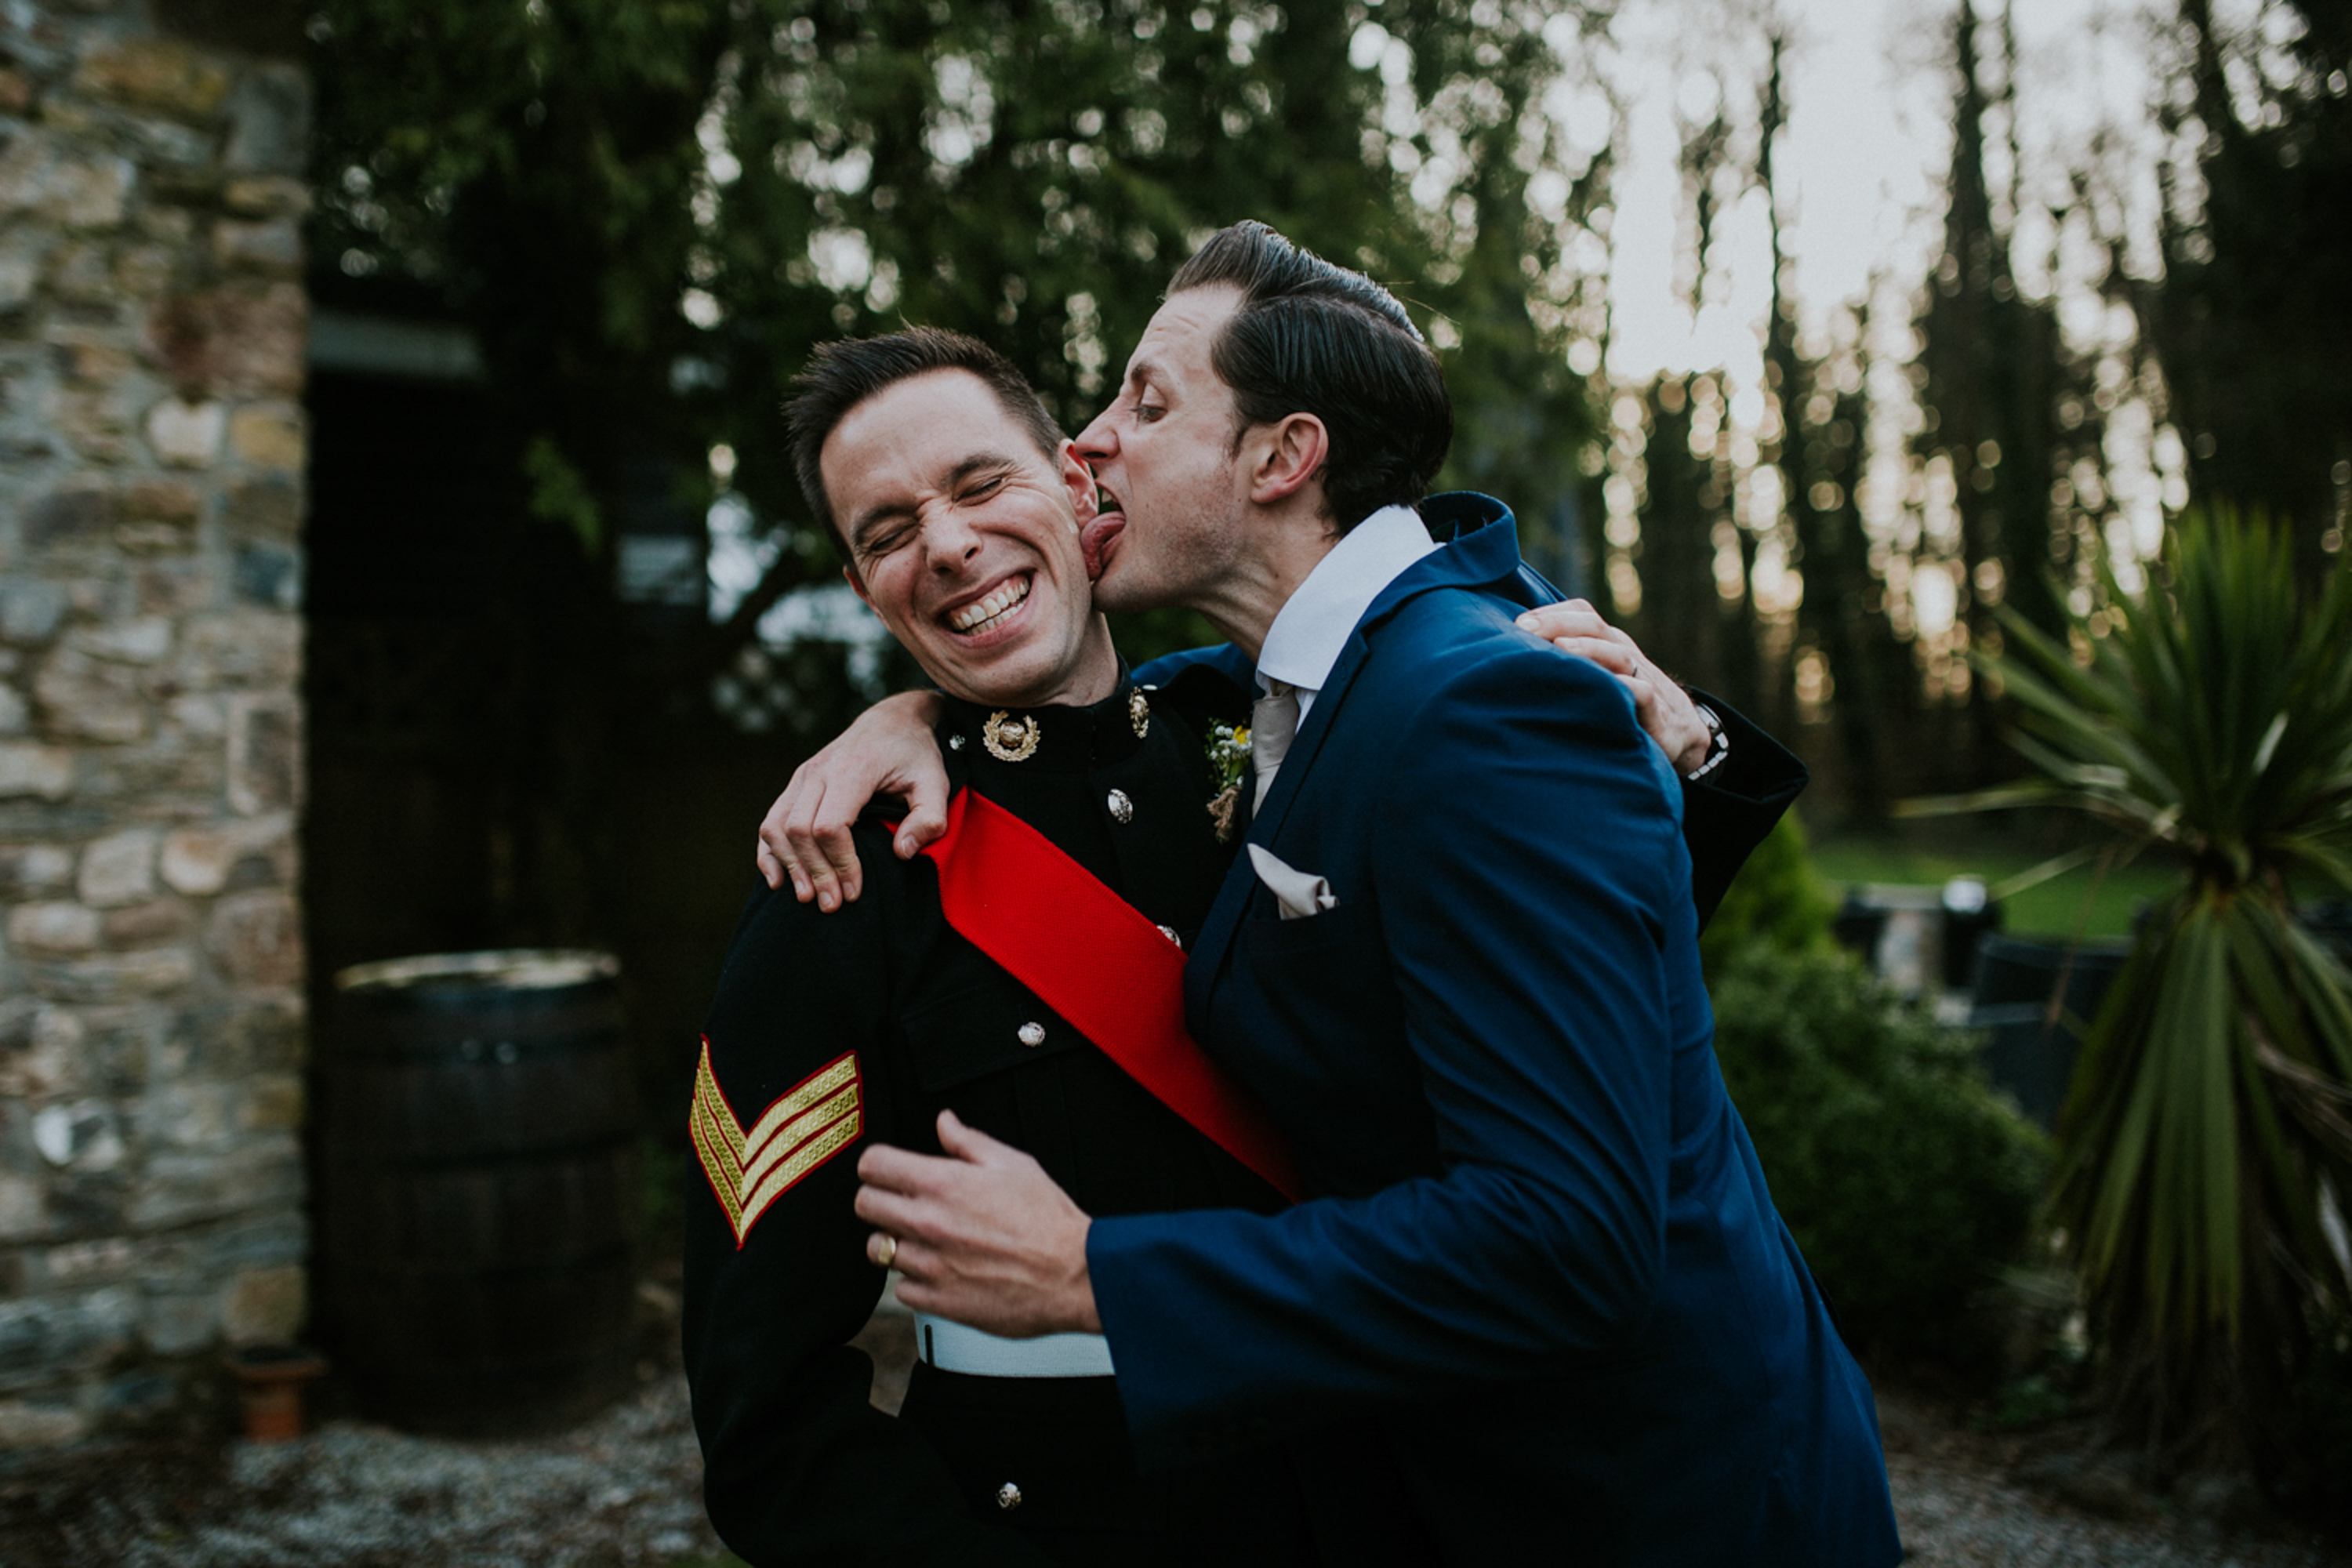 groom and best man